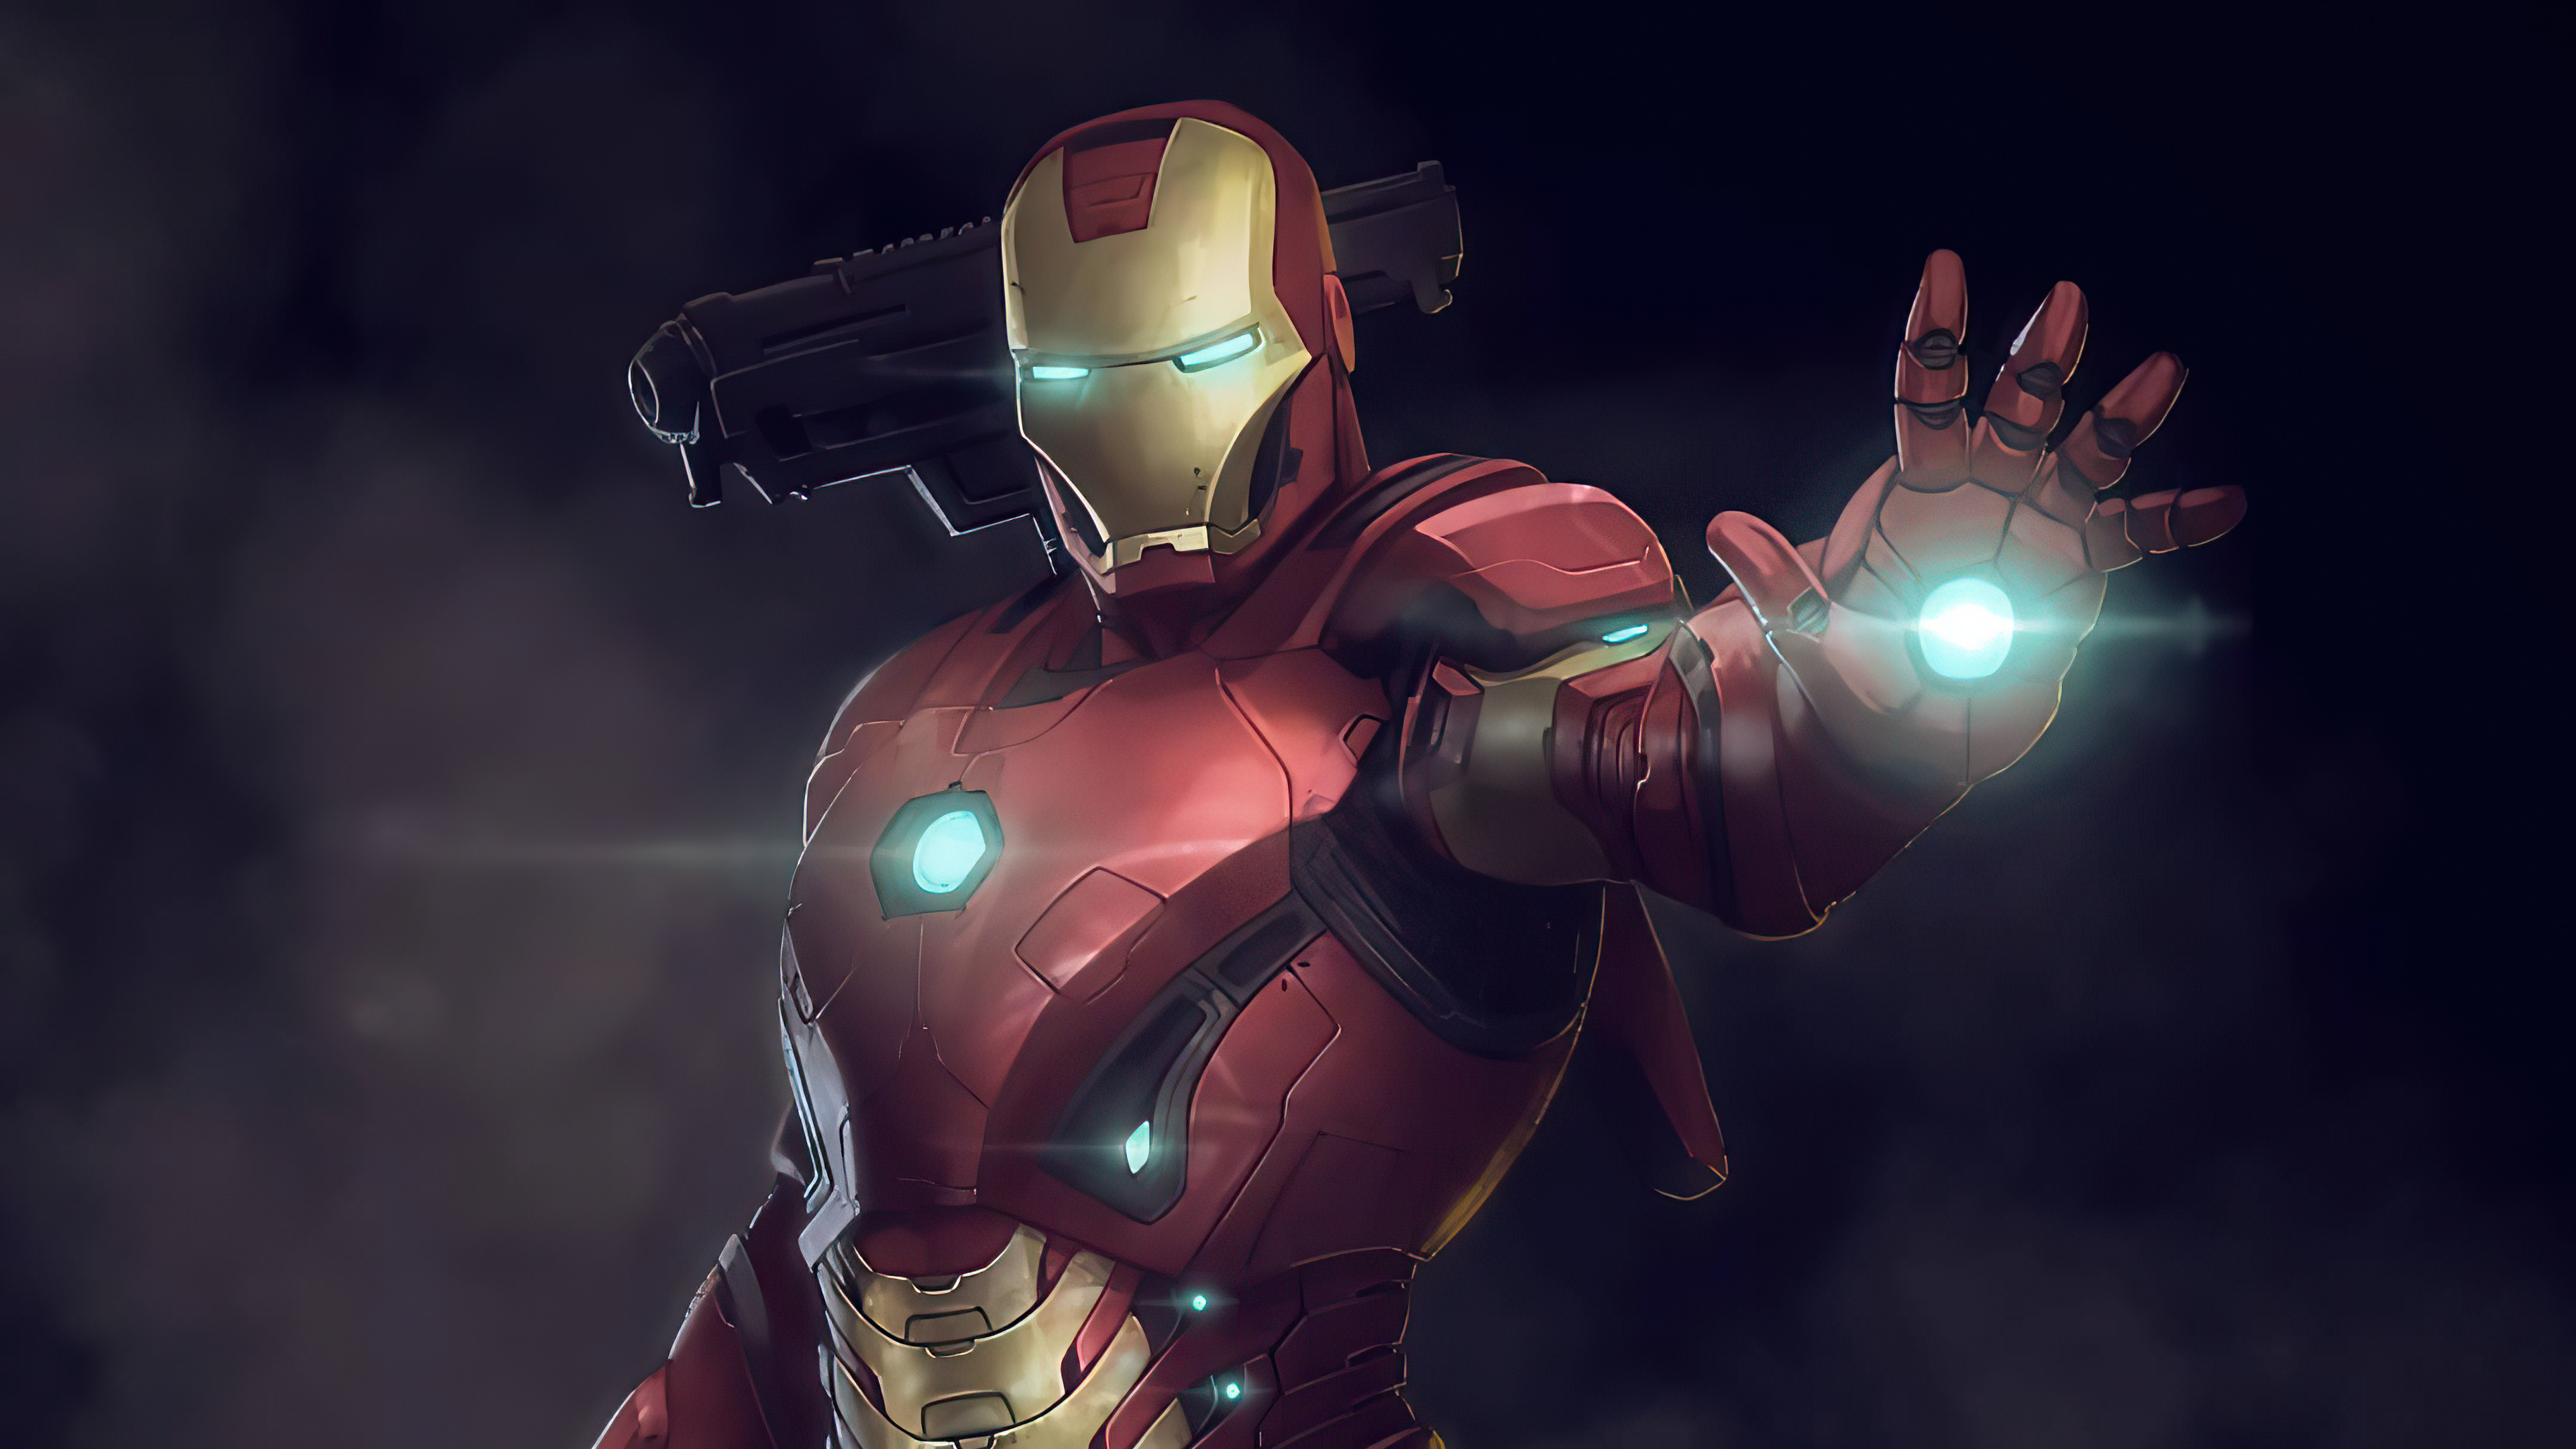 1366x768 Iron Man Fire Blaster 4k 1366x768 Resolution Hd 4k Wallpapers Images Backgrounds Photos And Pictures